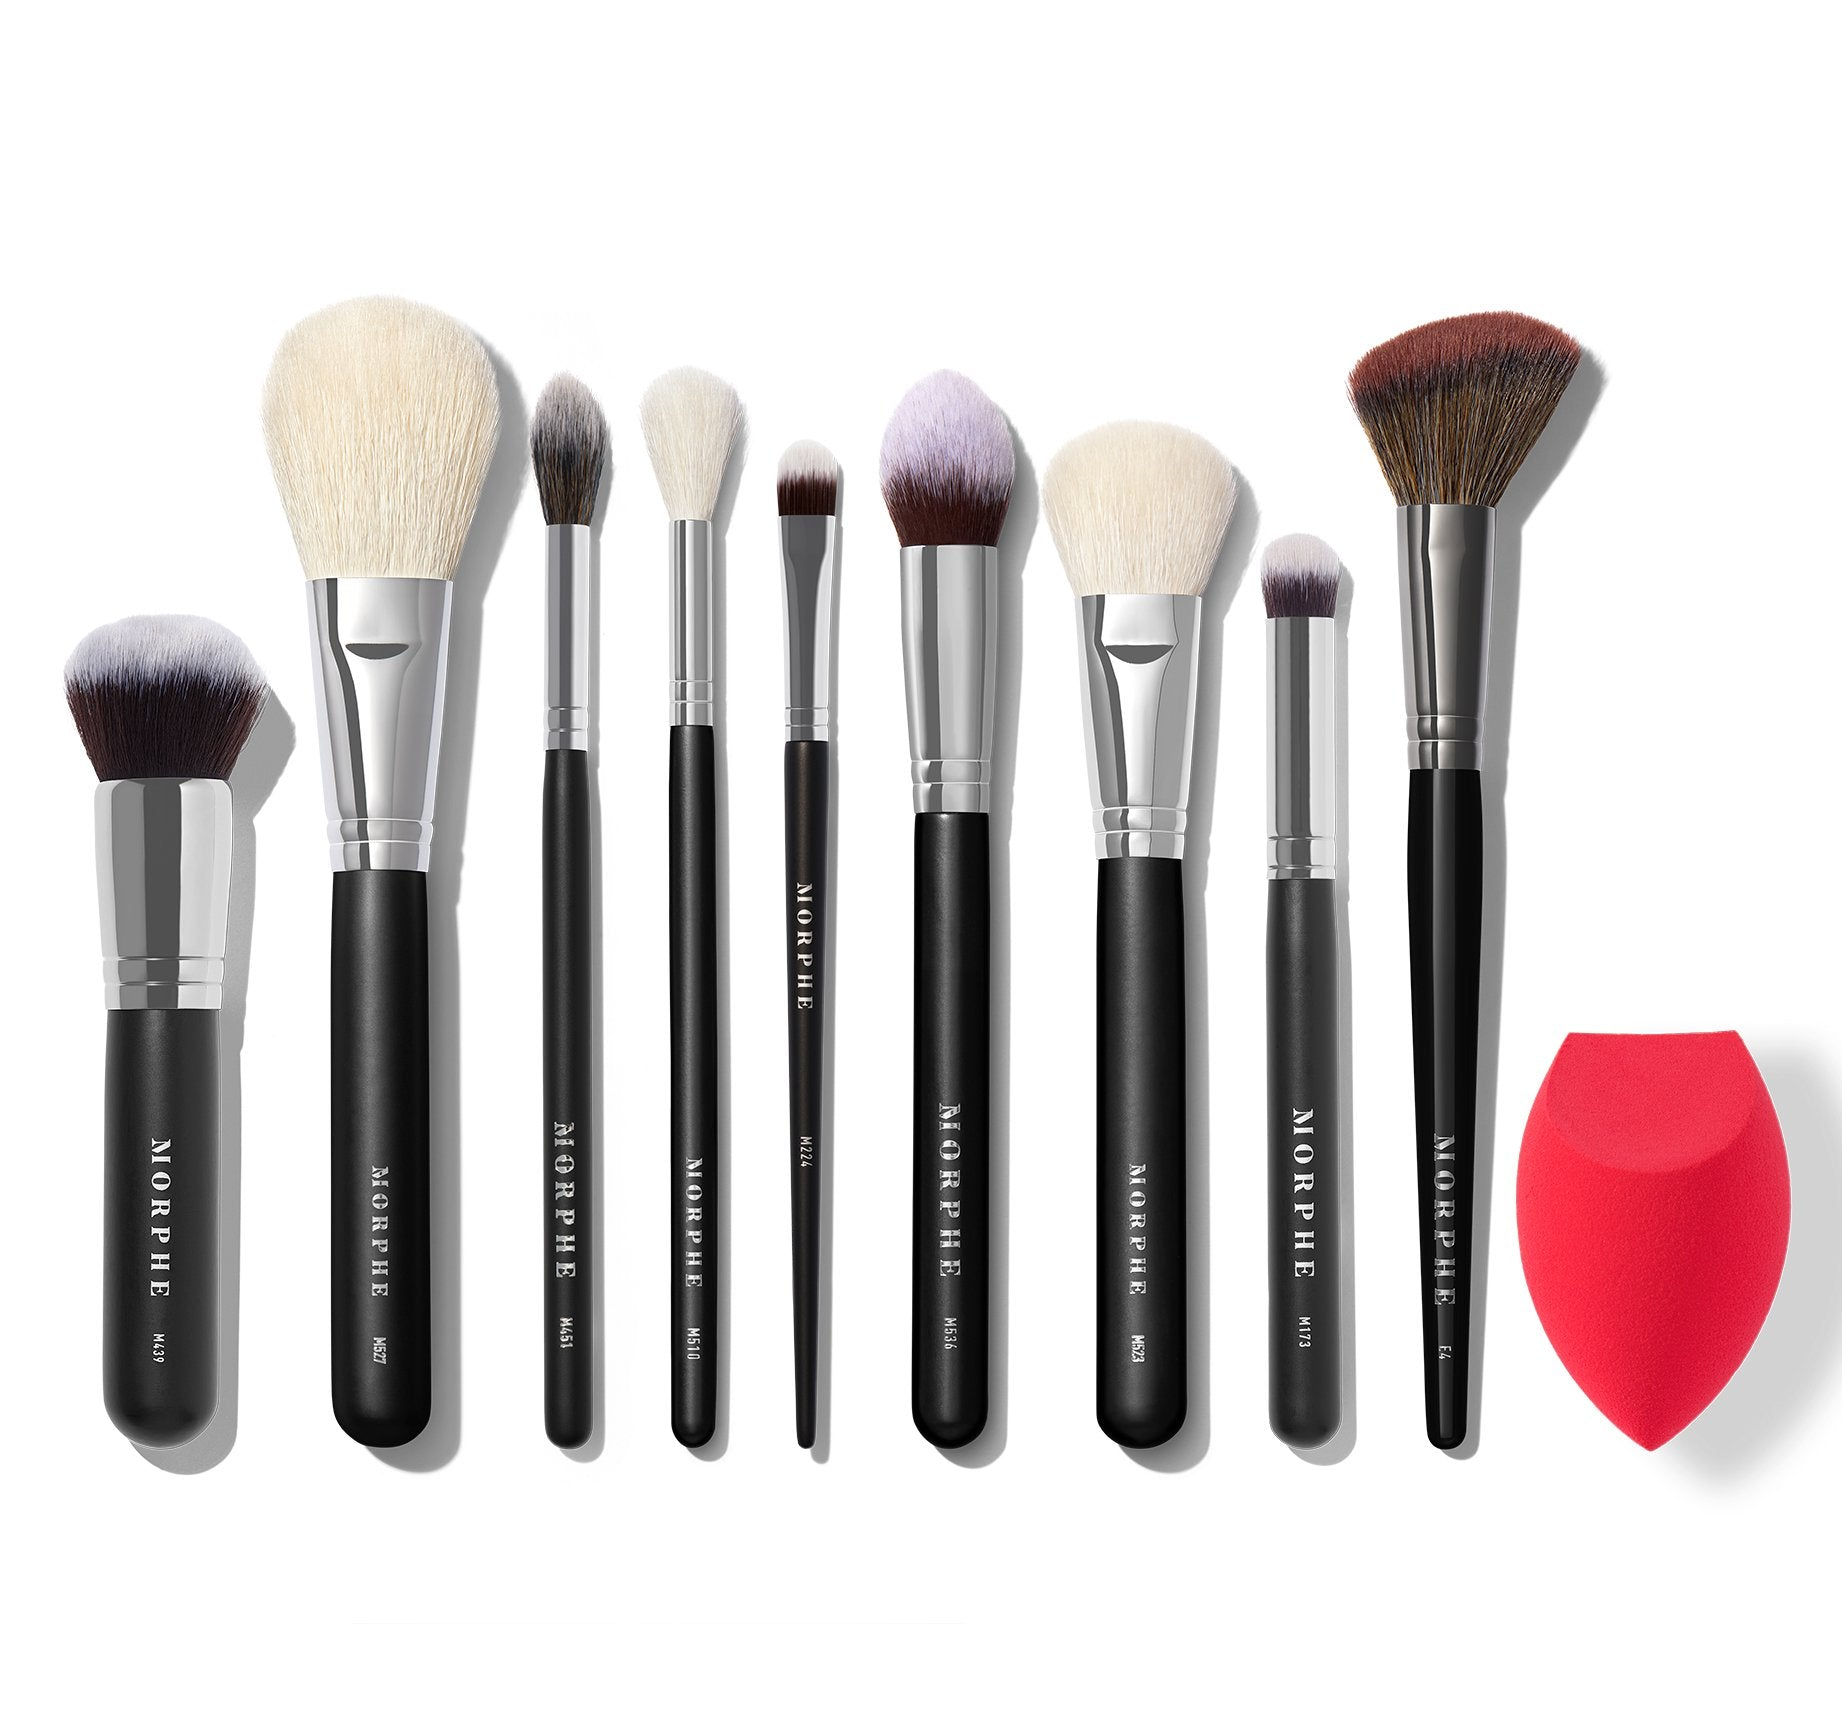 BABE FAVES FACE BRUSH SET, view larger image